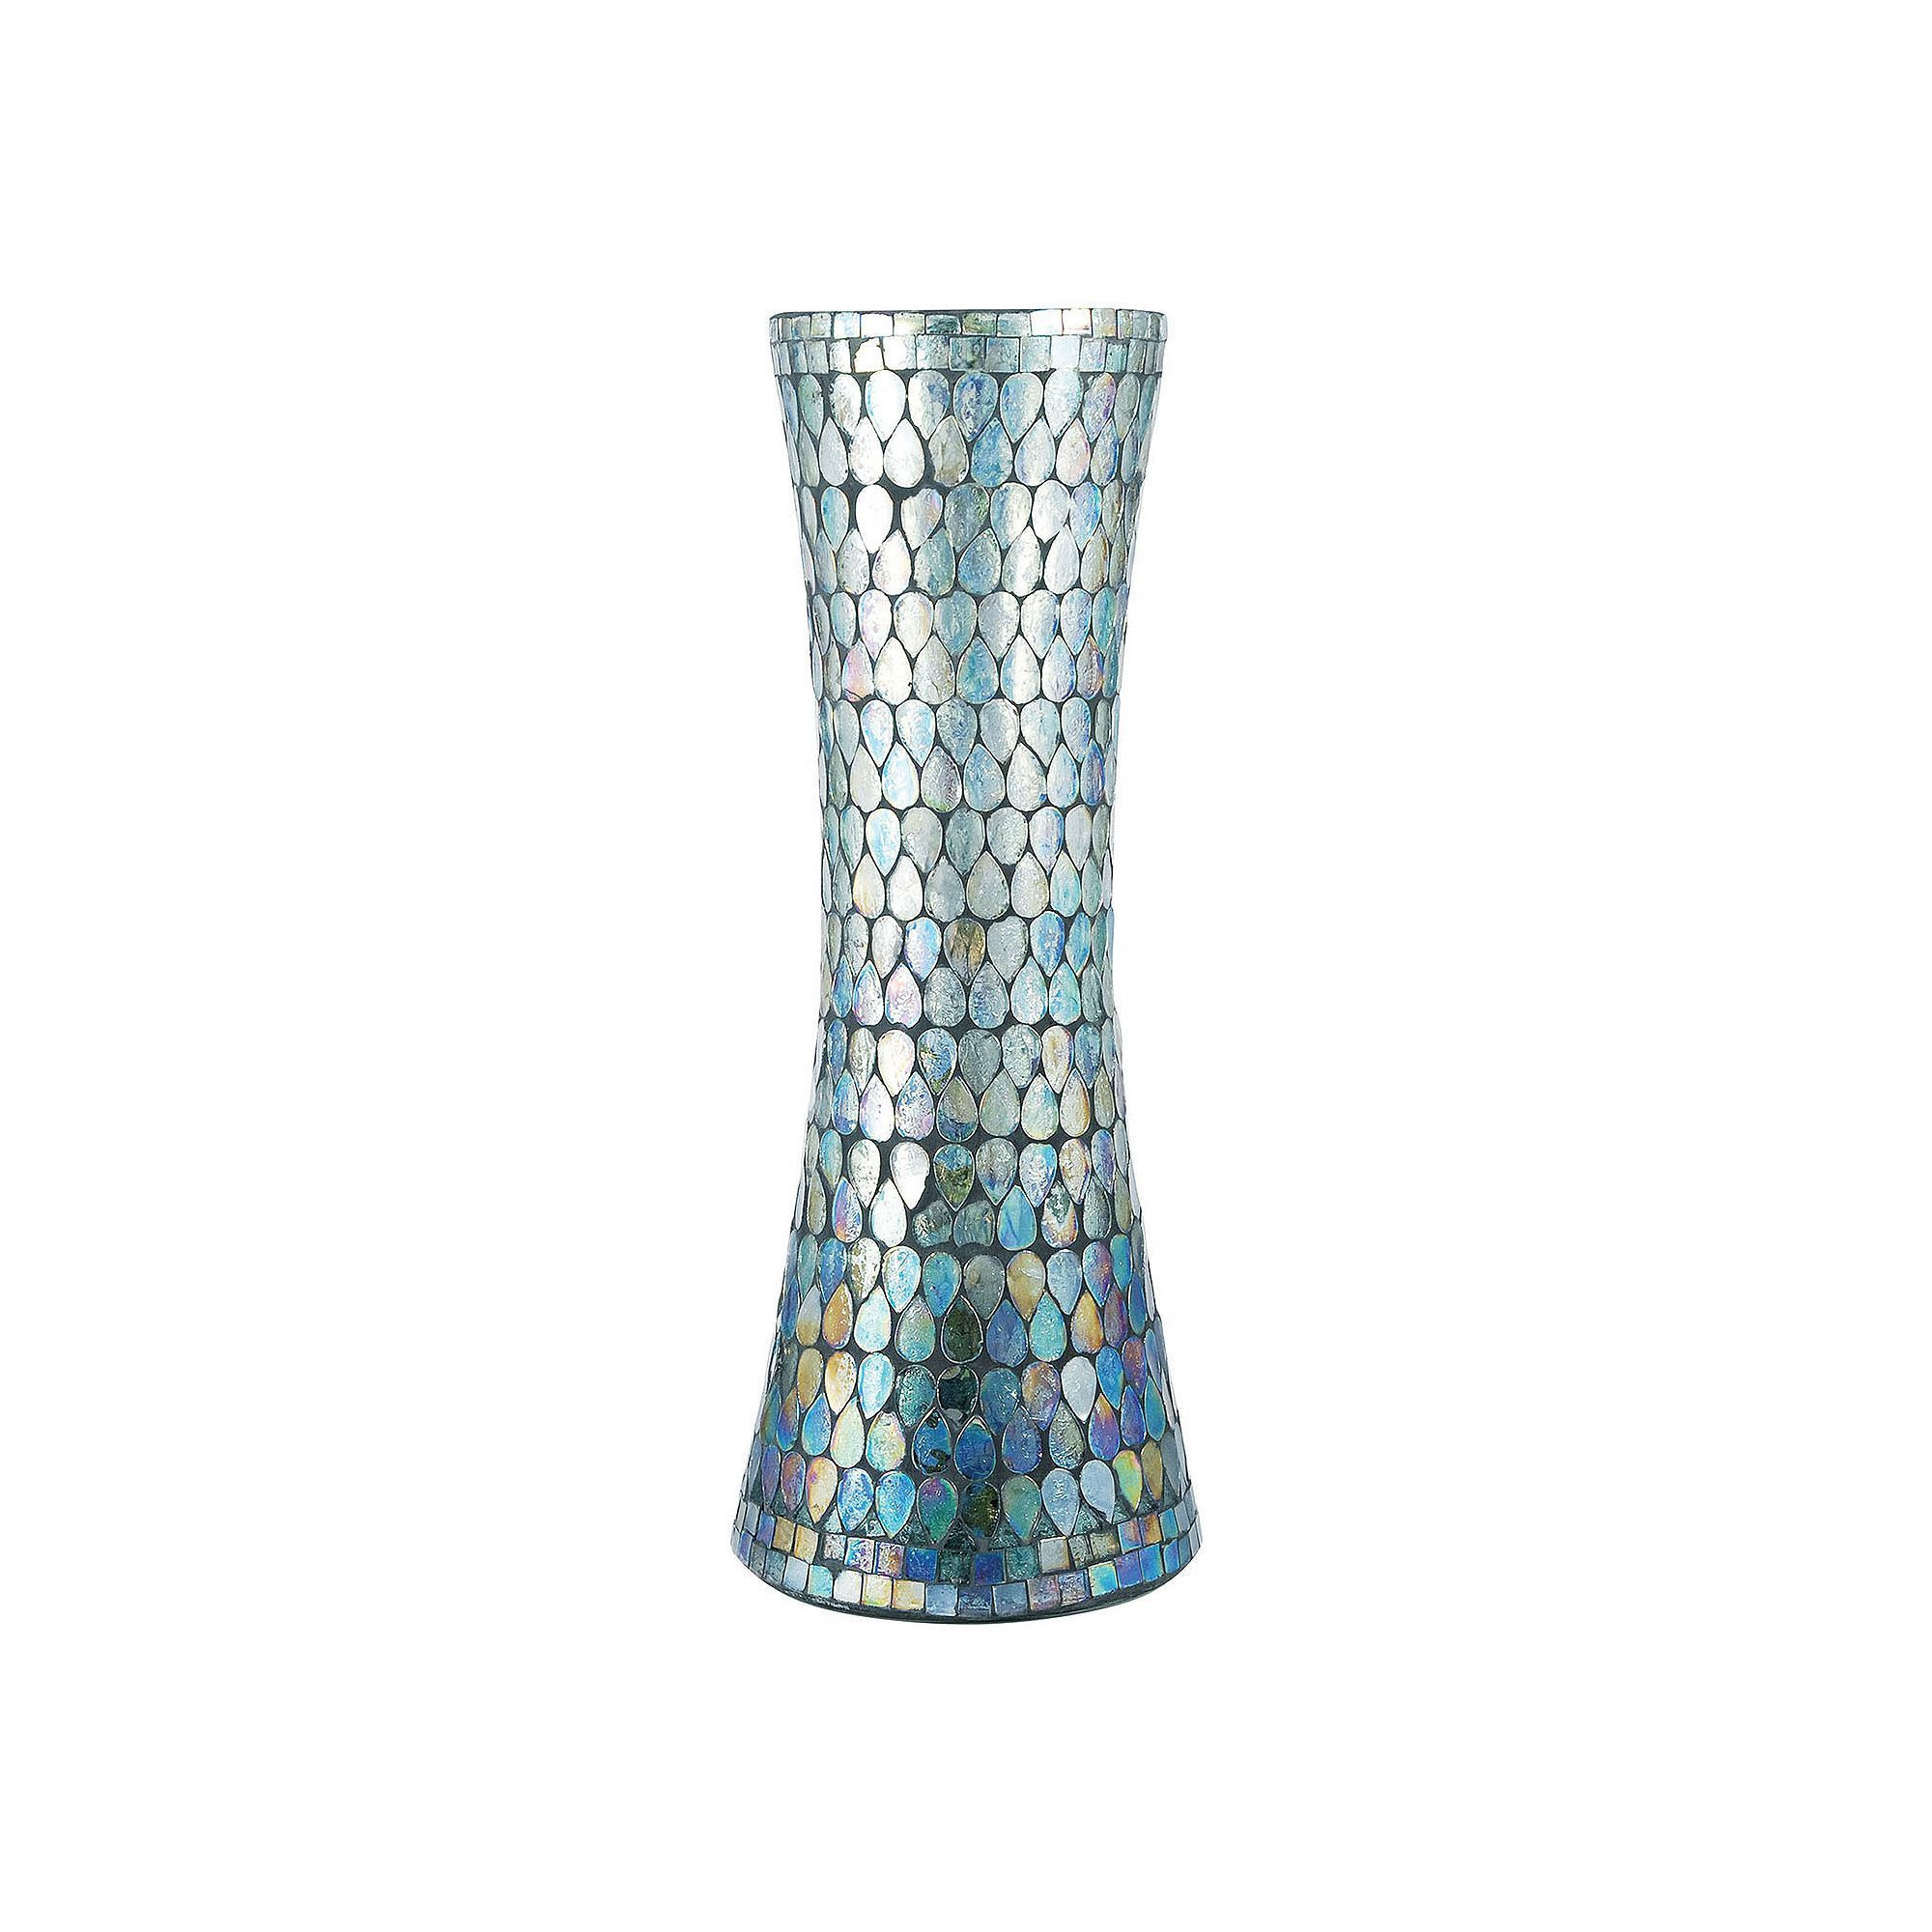 mosaic glass vases for sale of pomeroy shimmer mosaic vase mosaic vase and products inside pomeroy shimmer mosaic vase